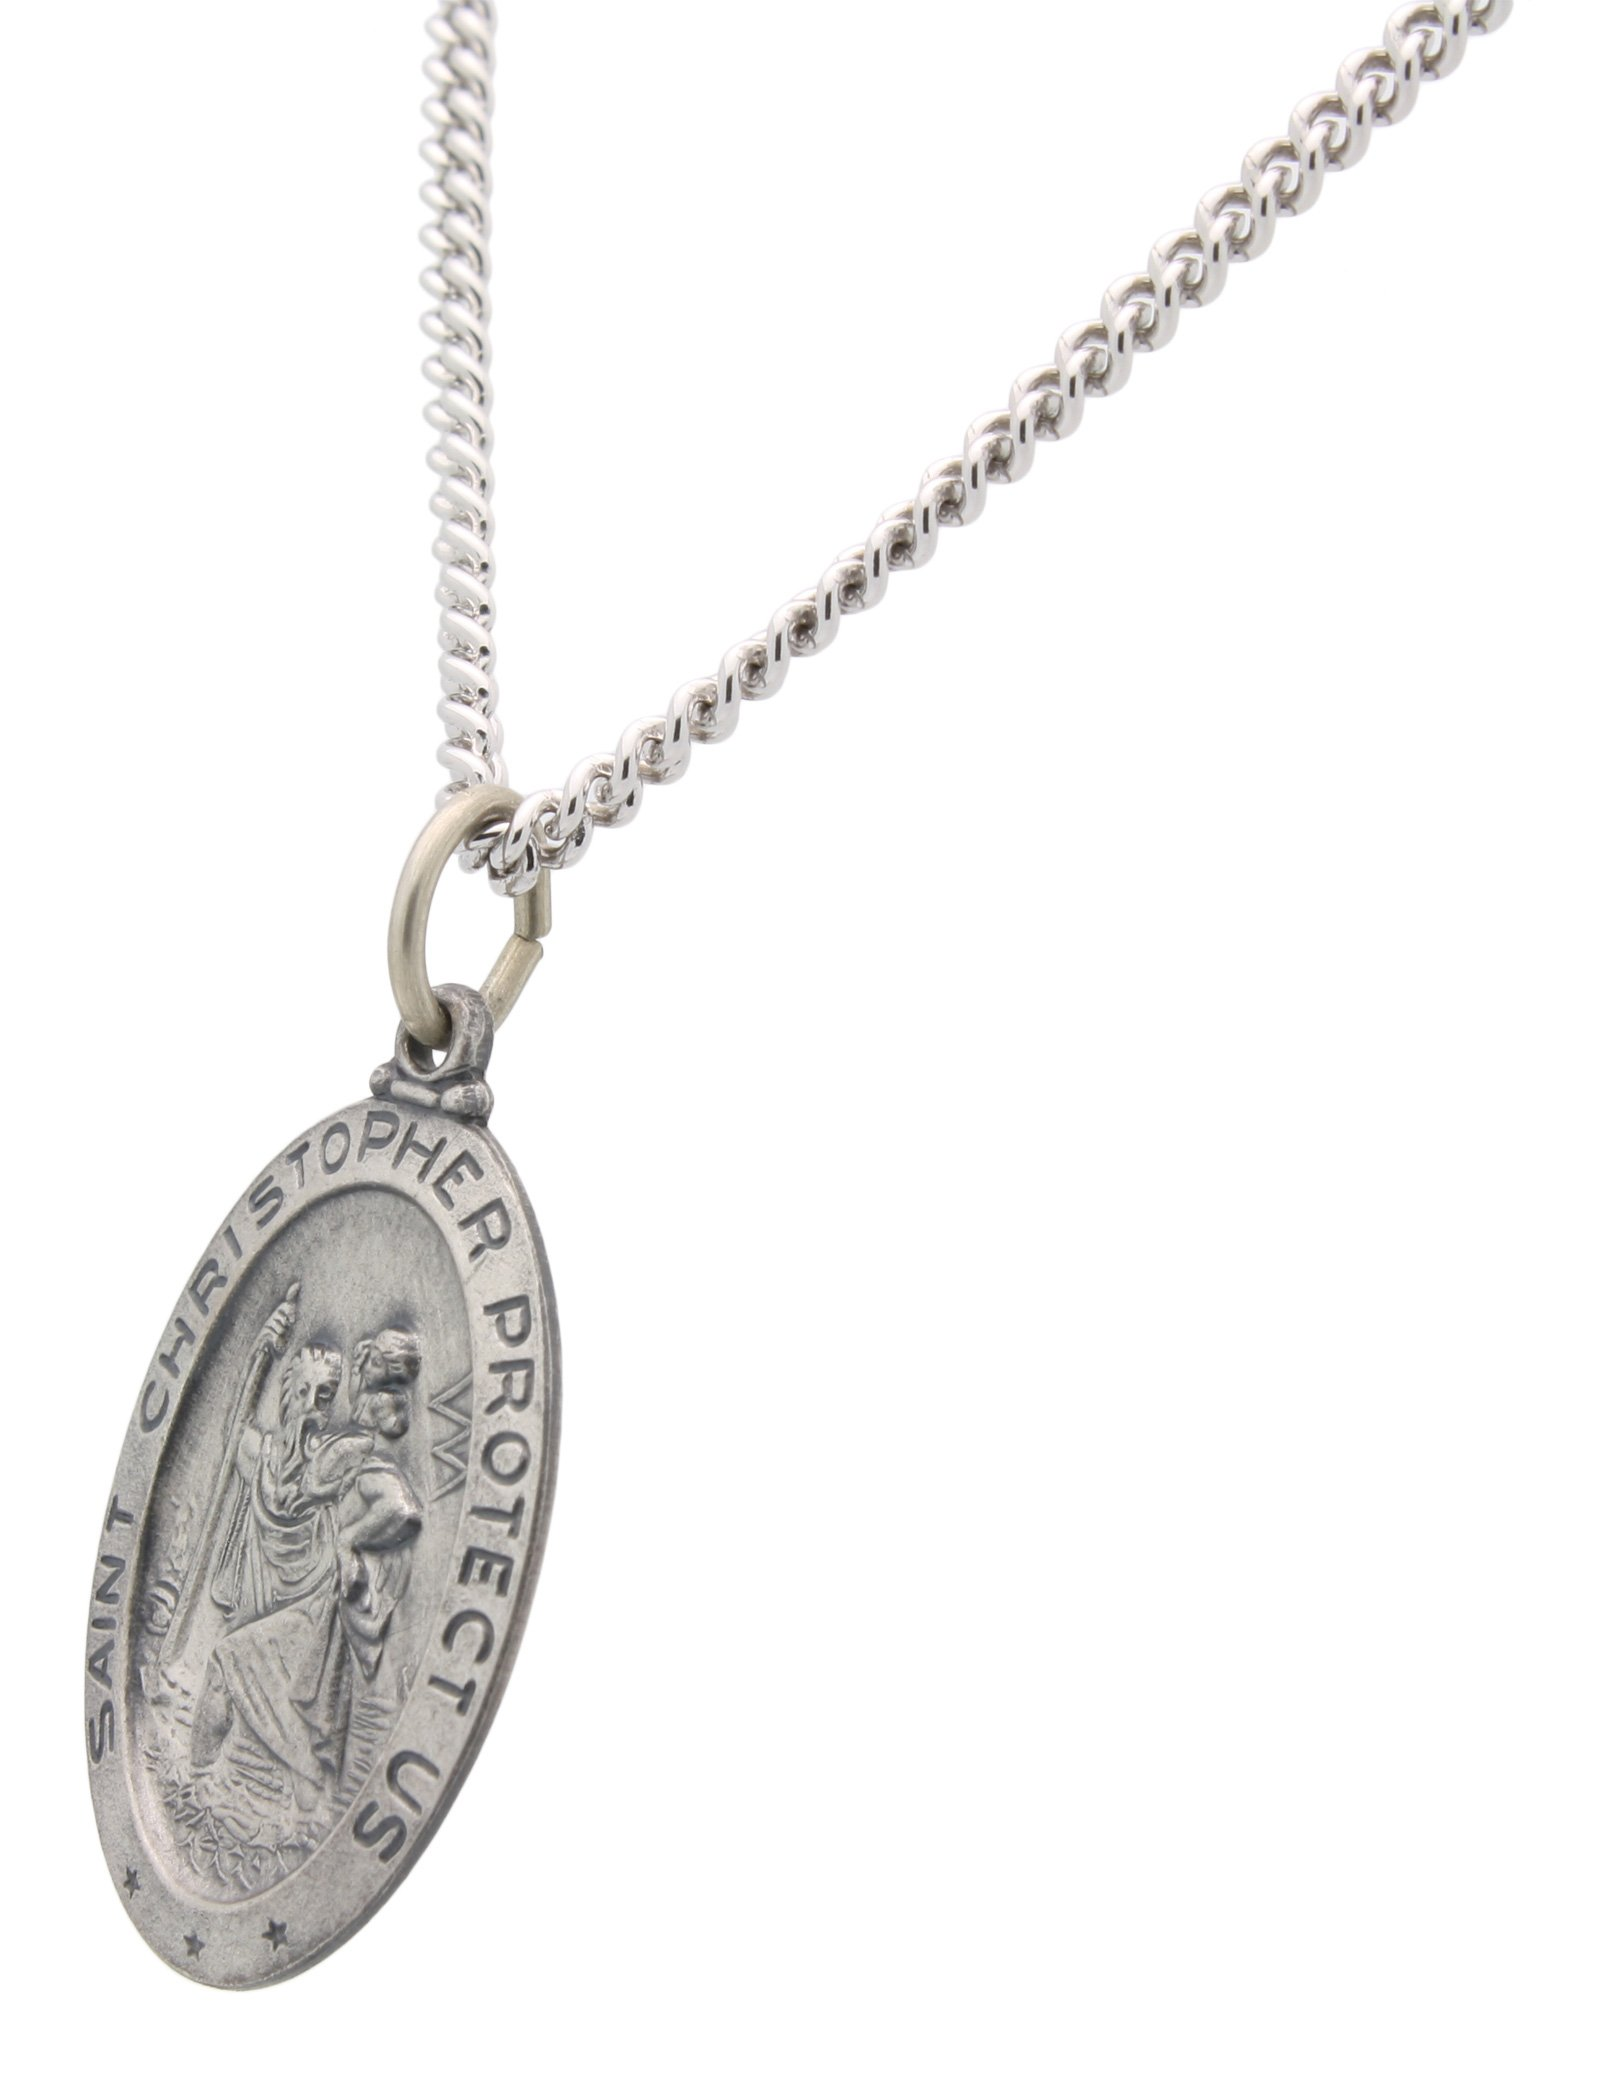 All Patron Saints Oval St Christopher Medal Necklace in Solid Sterling Silver Protect Us Medal 24 x 16 MM With 24 Inch Chain (Adult Male) by All Patron Saints (Image #2)